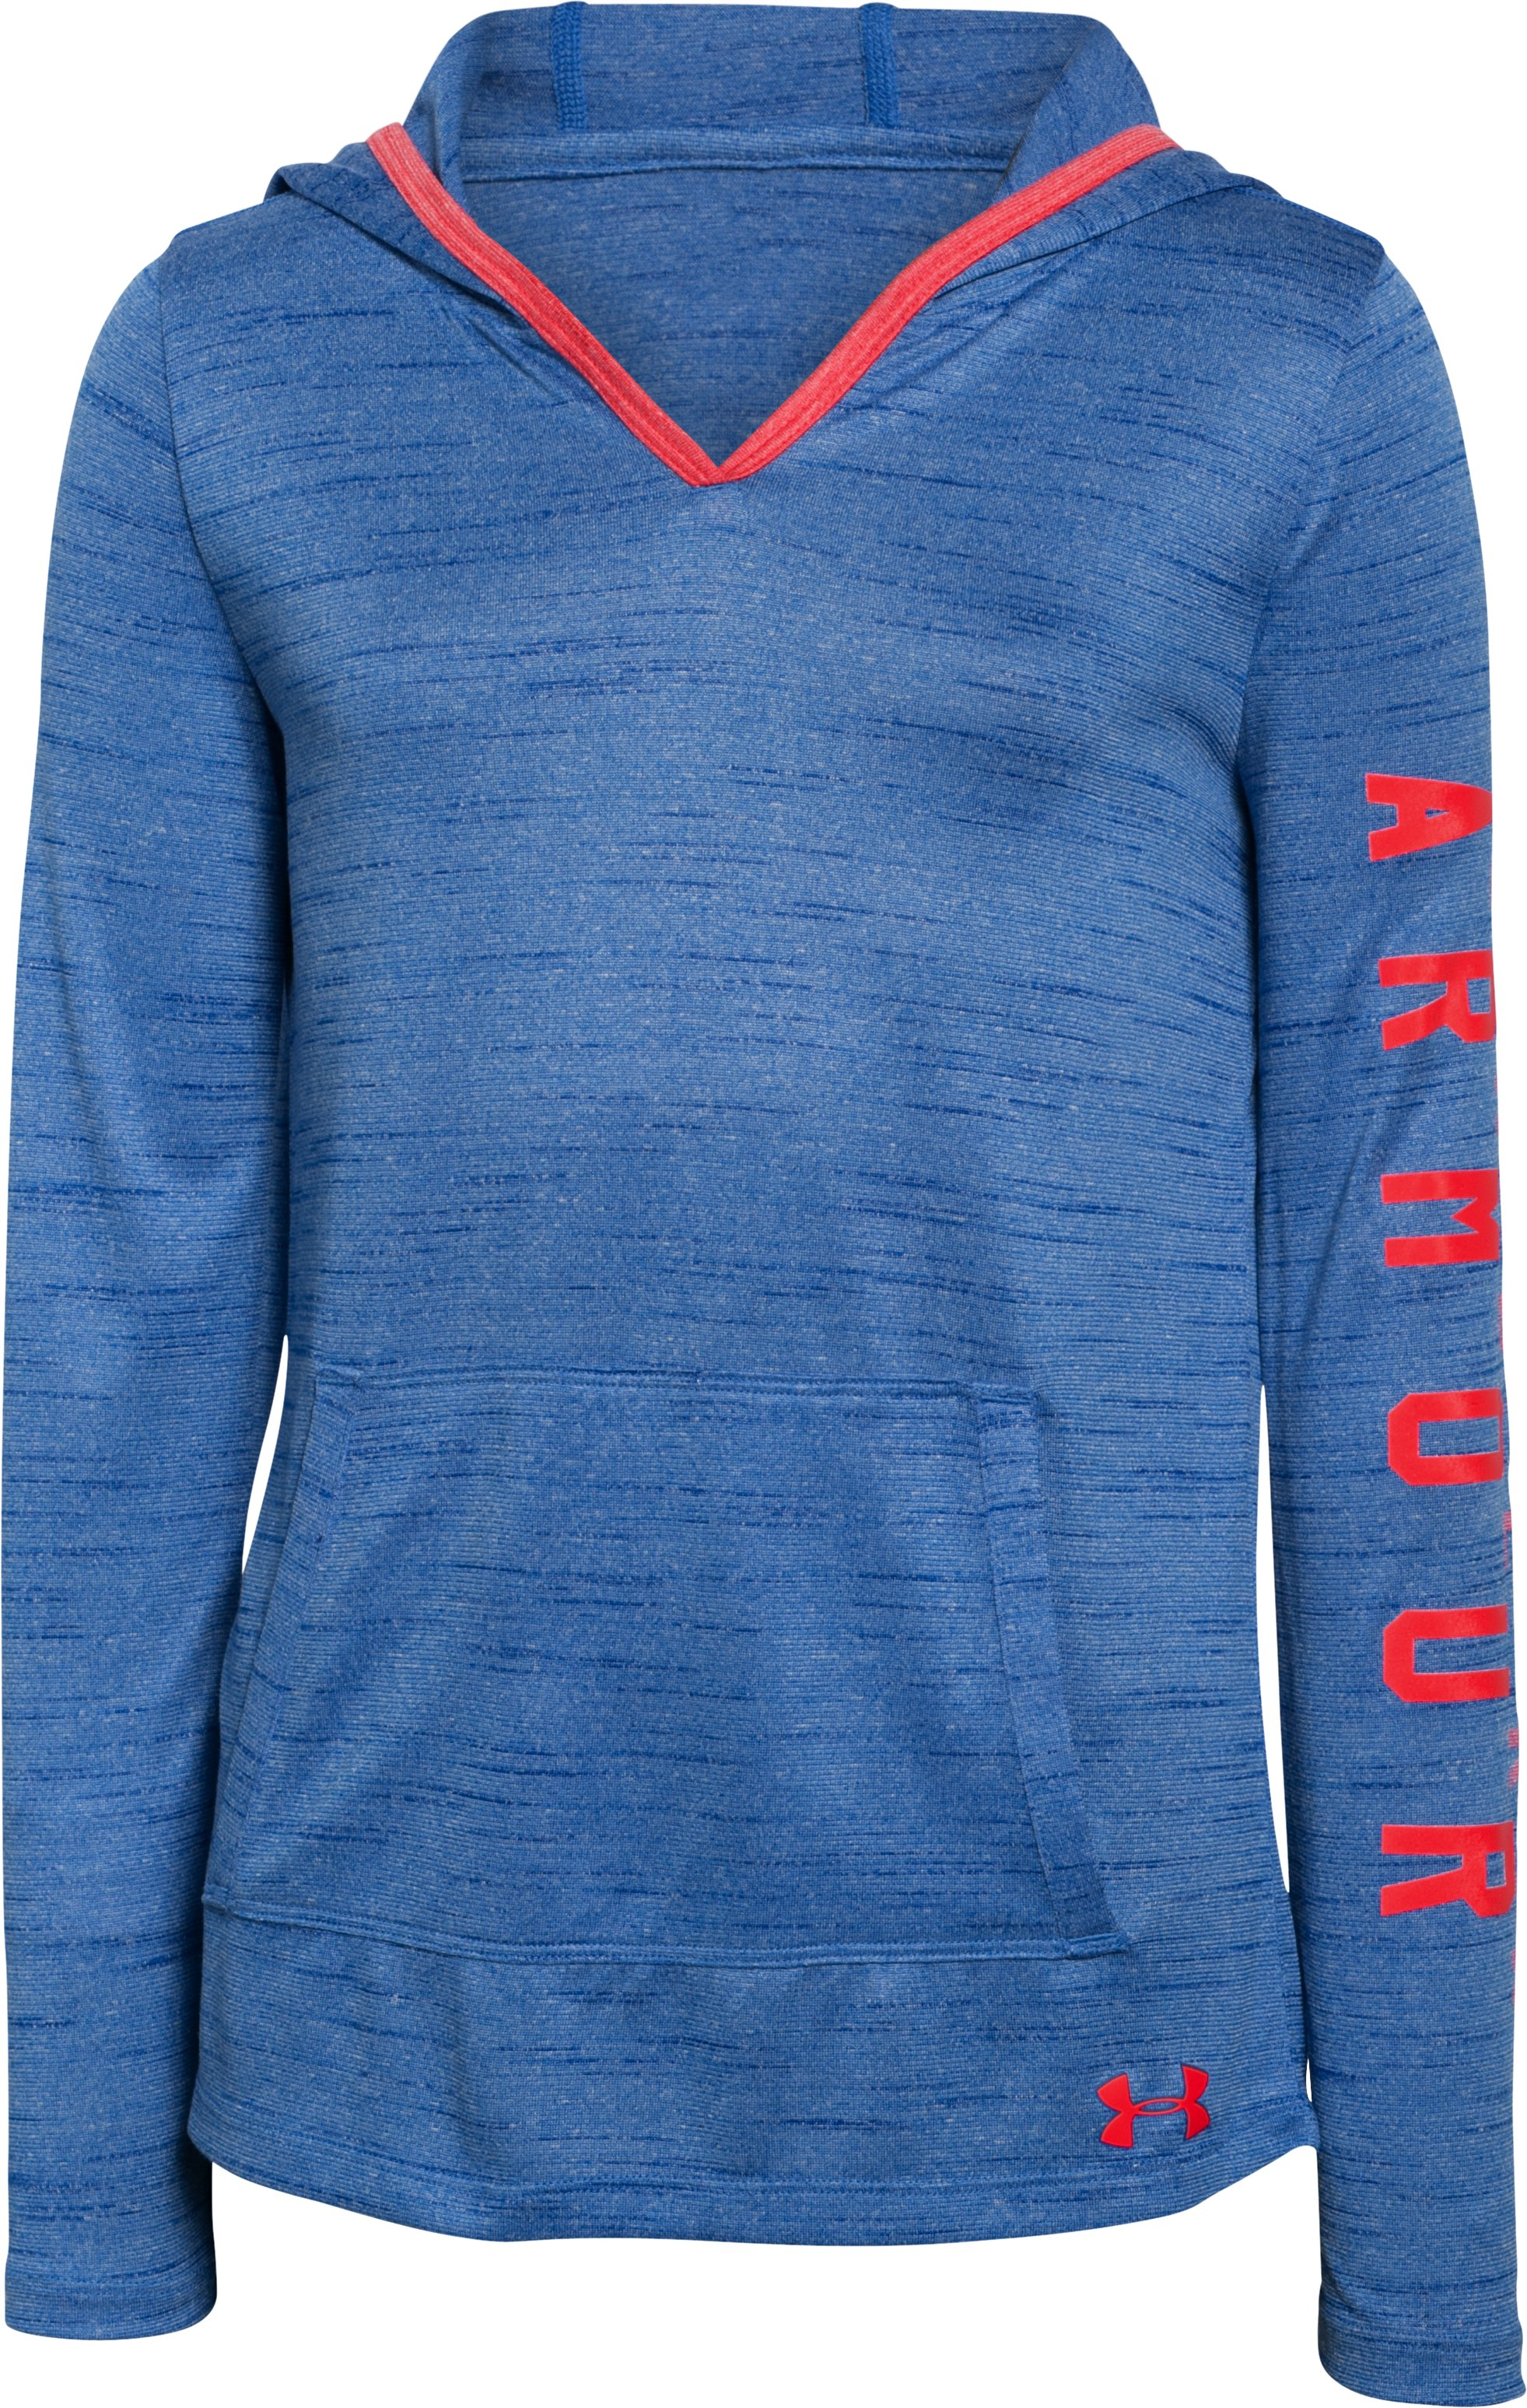 Girls' UA Tech™ Hoodie, ULTRA BLUE, undefined